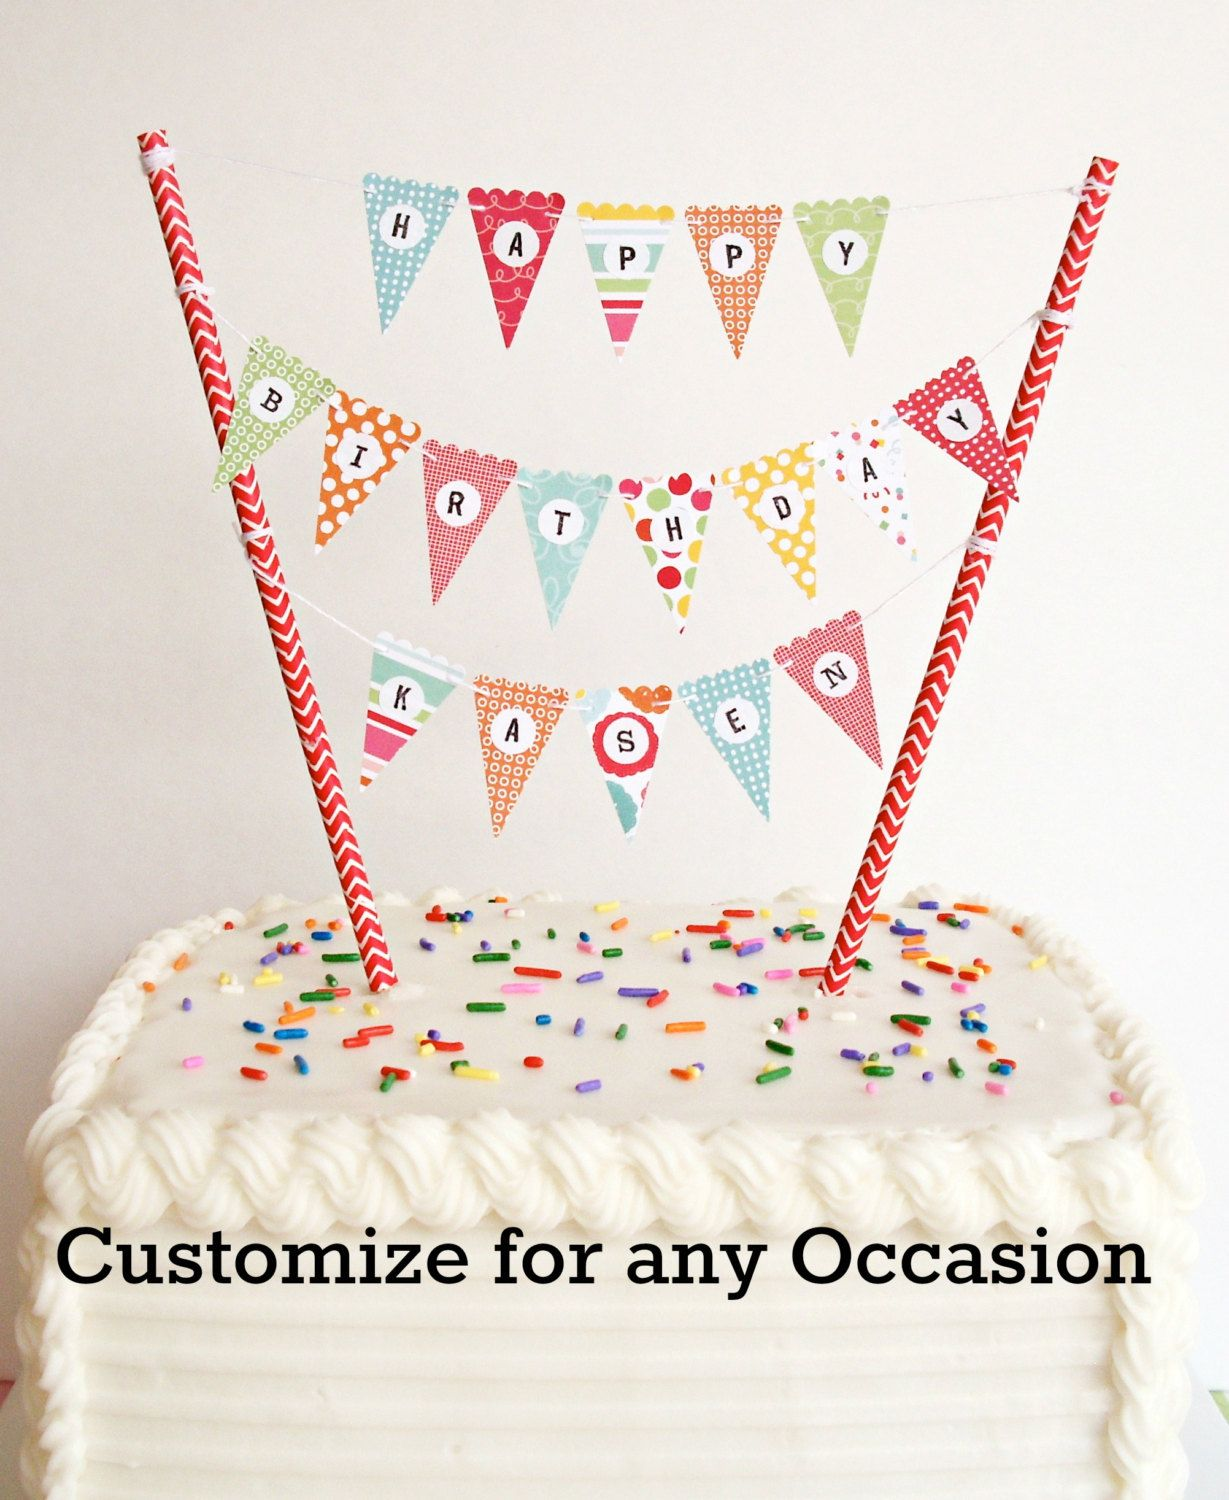 Cake Banner Bunting DIY Kit Happy By TheCleverWorkshop 1240